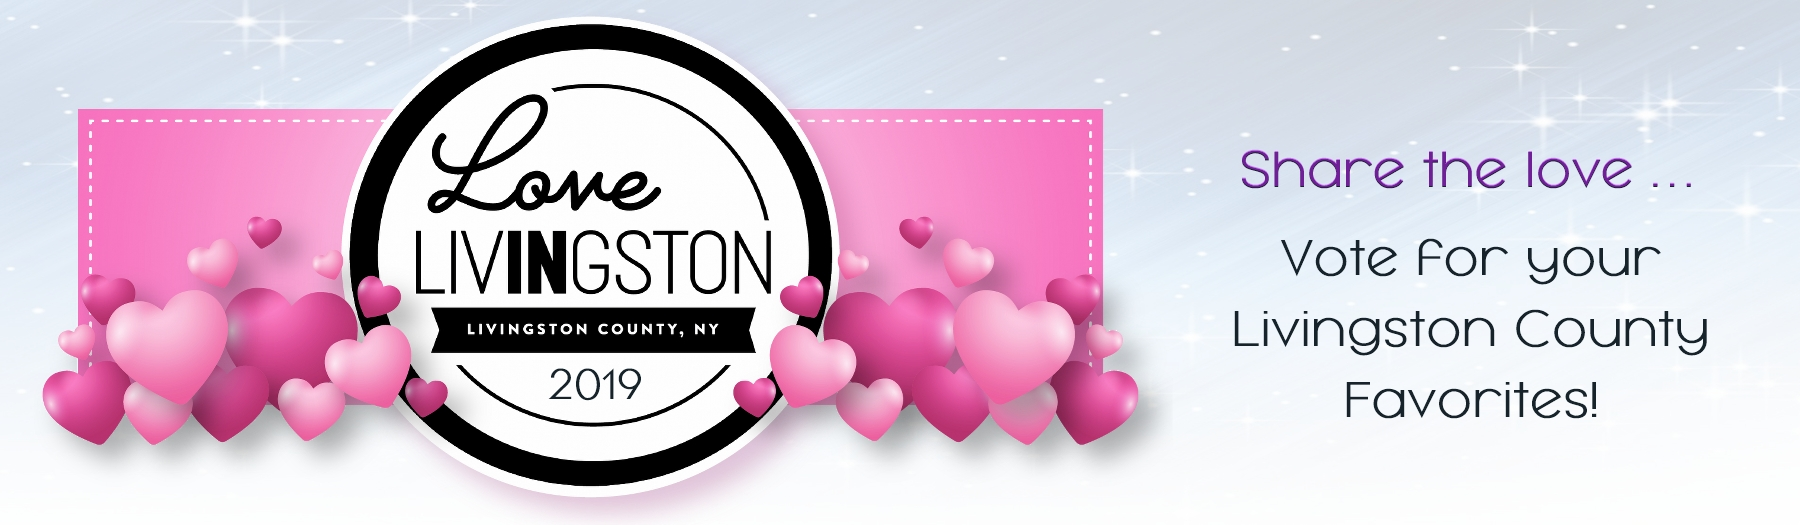 Love-IN-Livingston-promo-2019.-Header-image-1.jpg